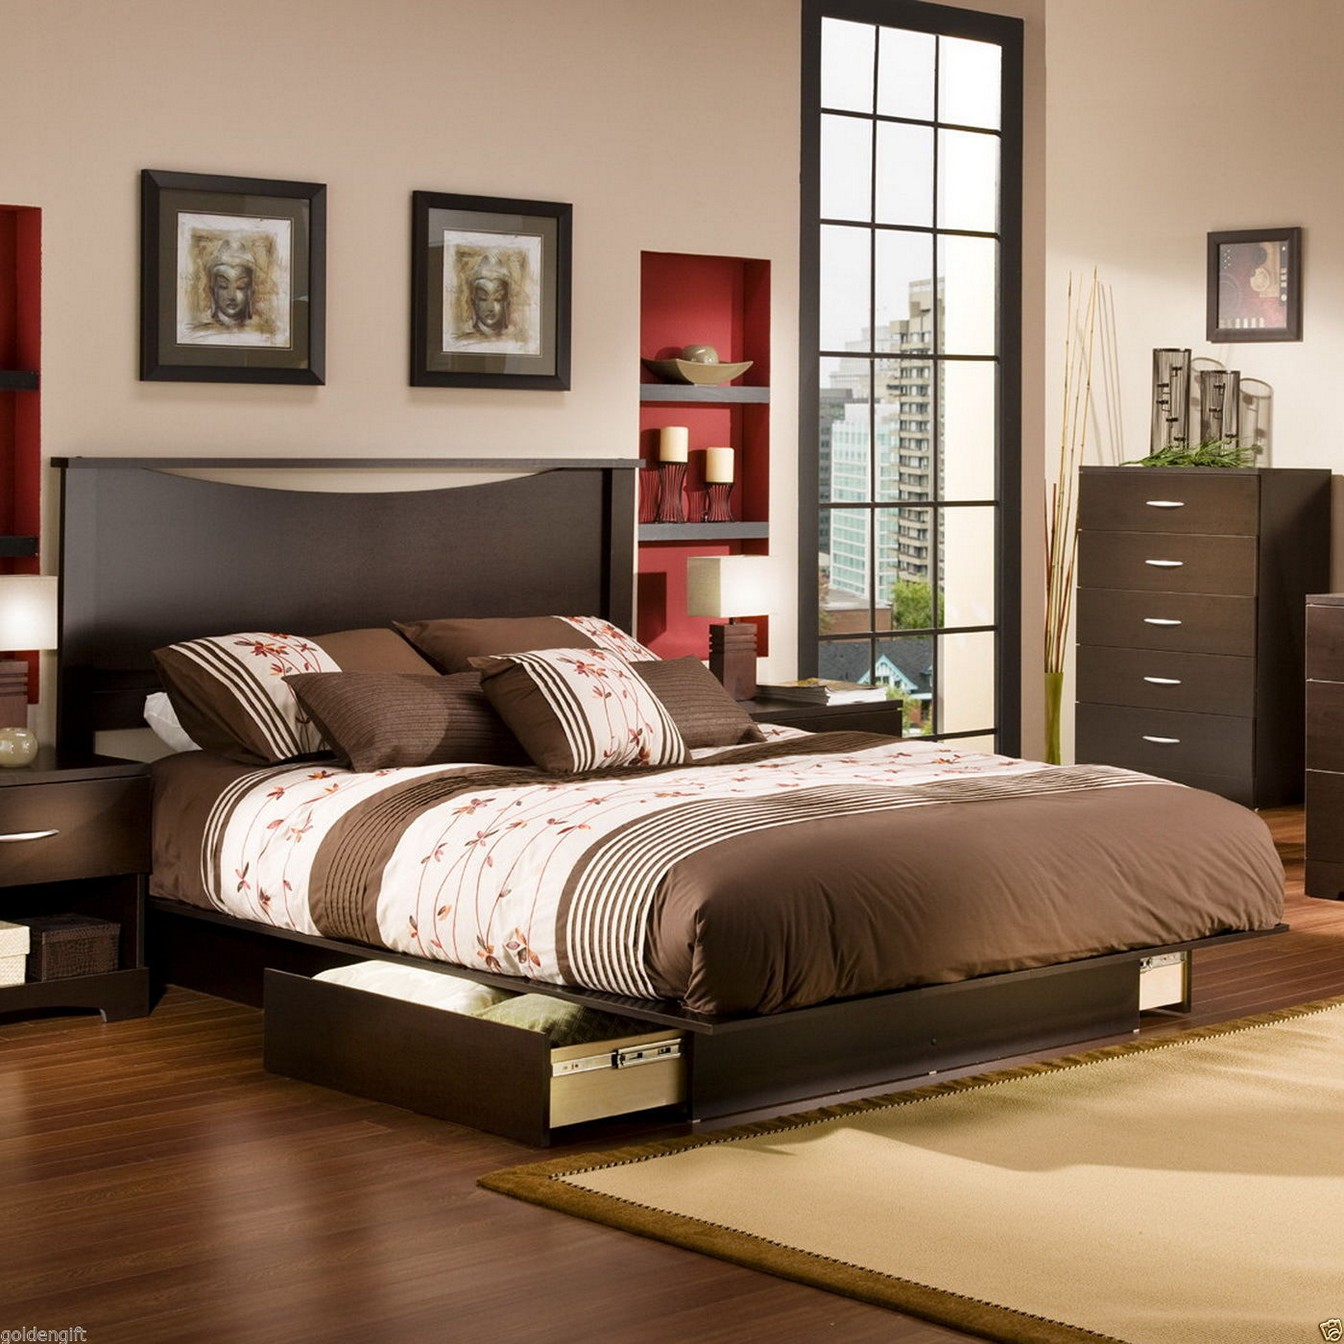 Bed Storage Ideas: For All Needs!